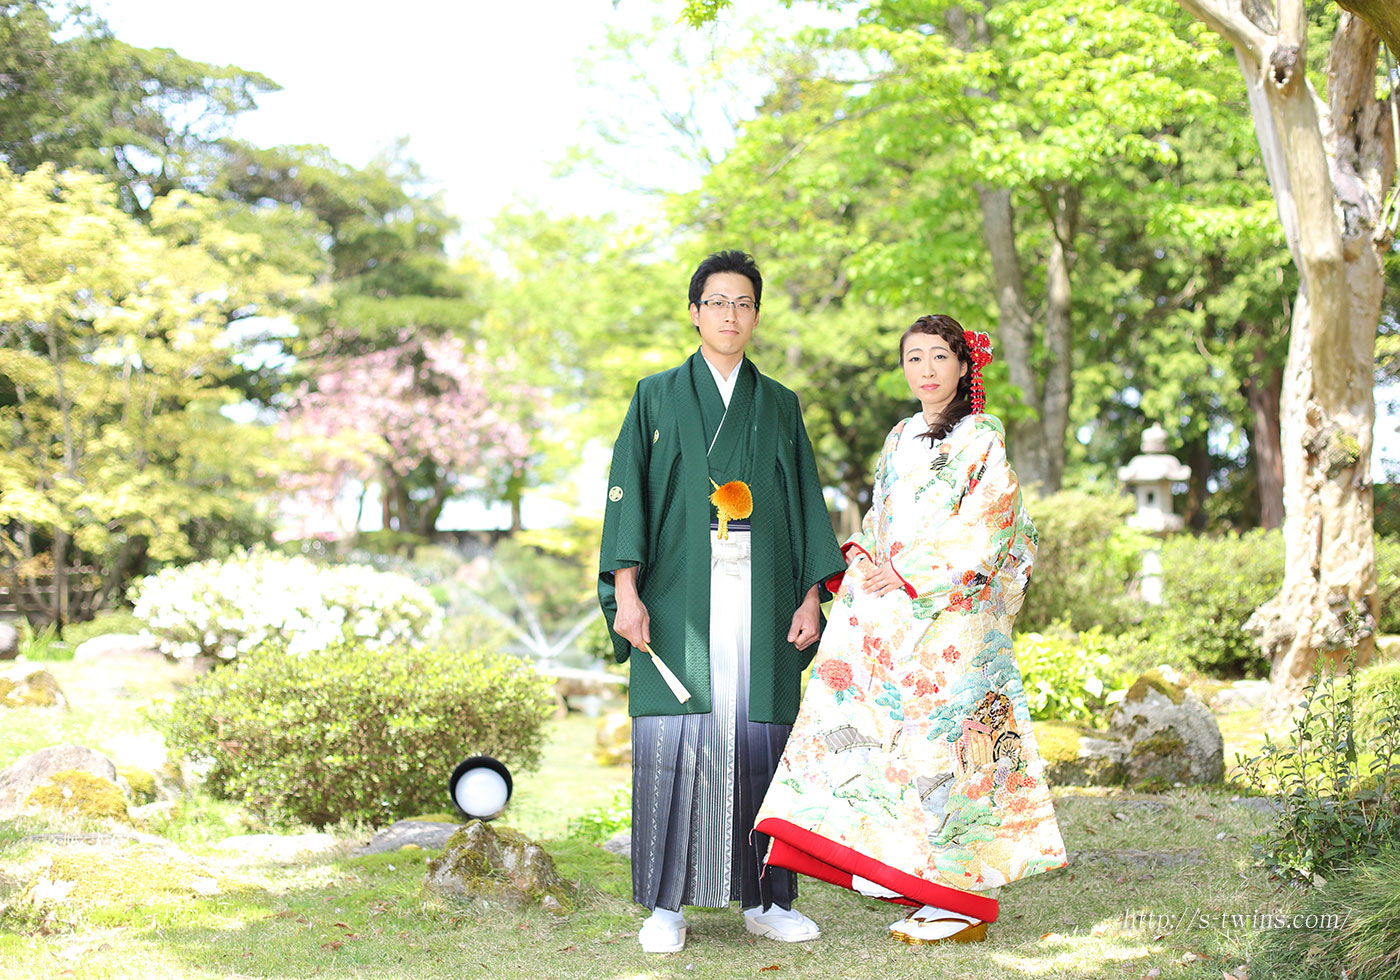 16apr30wedding_igarashitei01